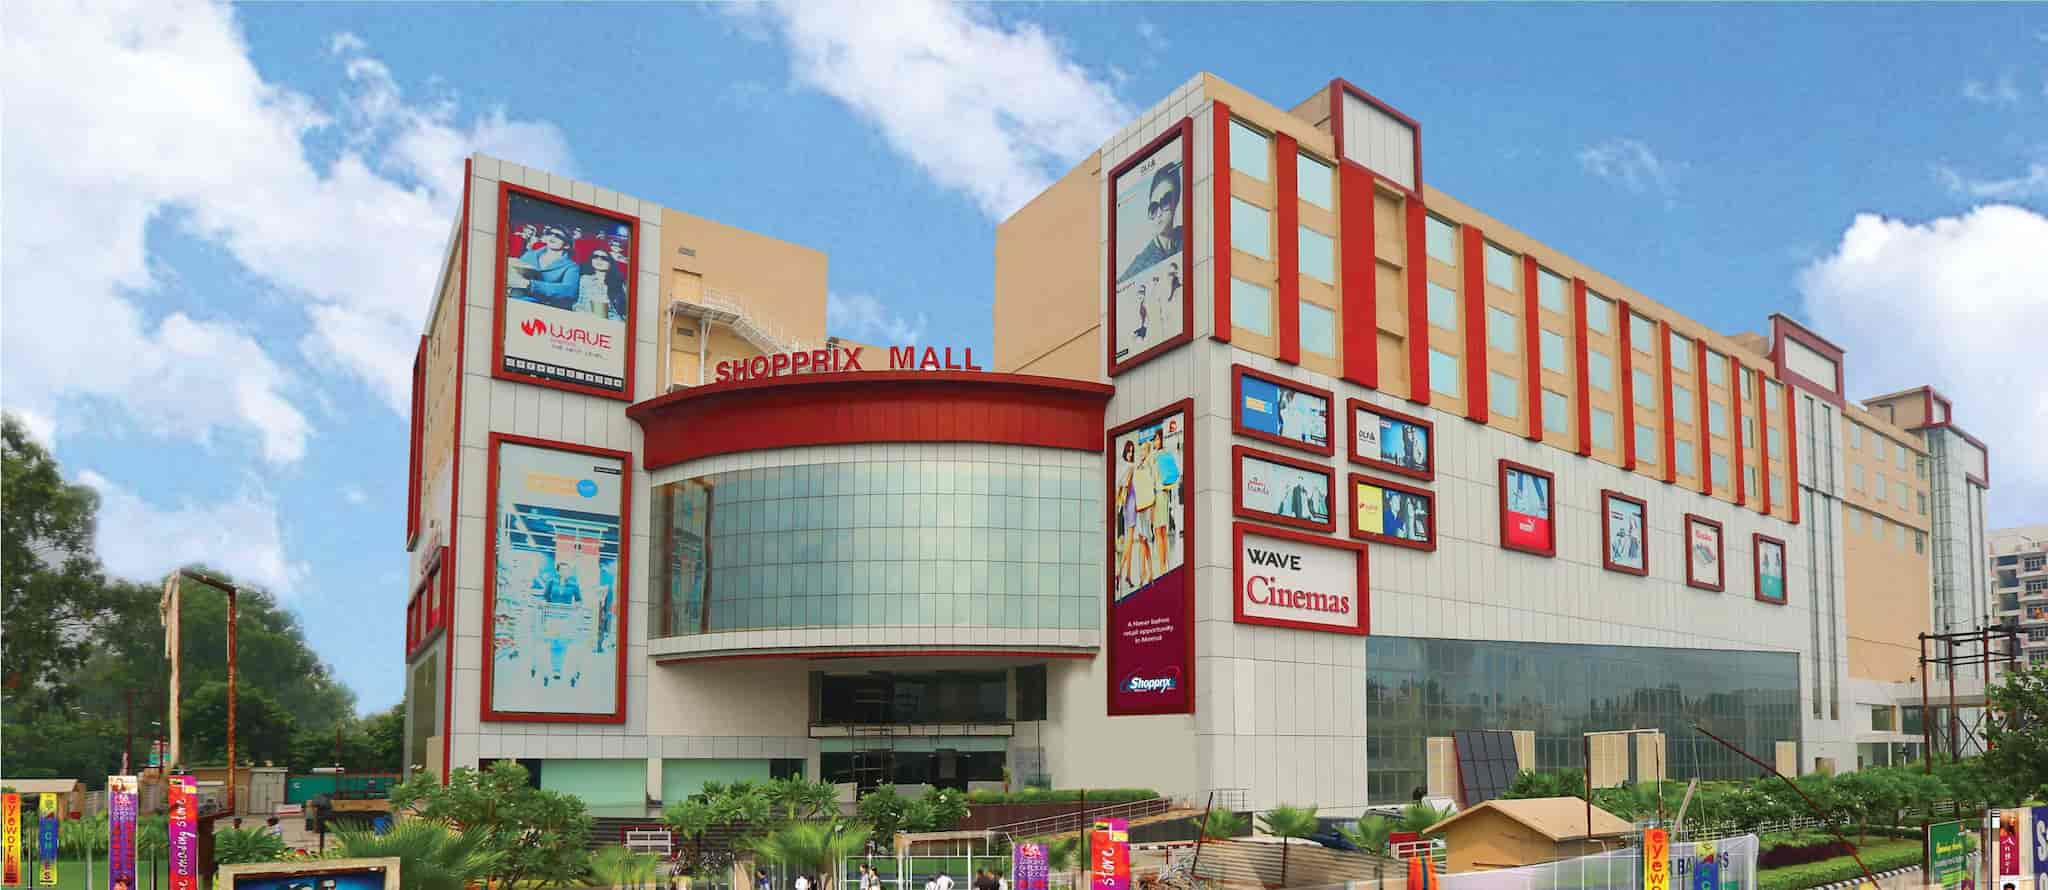 Image result for The Shopprix Mall pictures